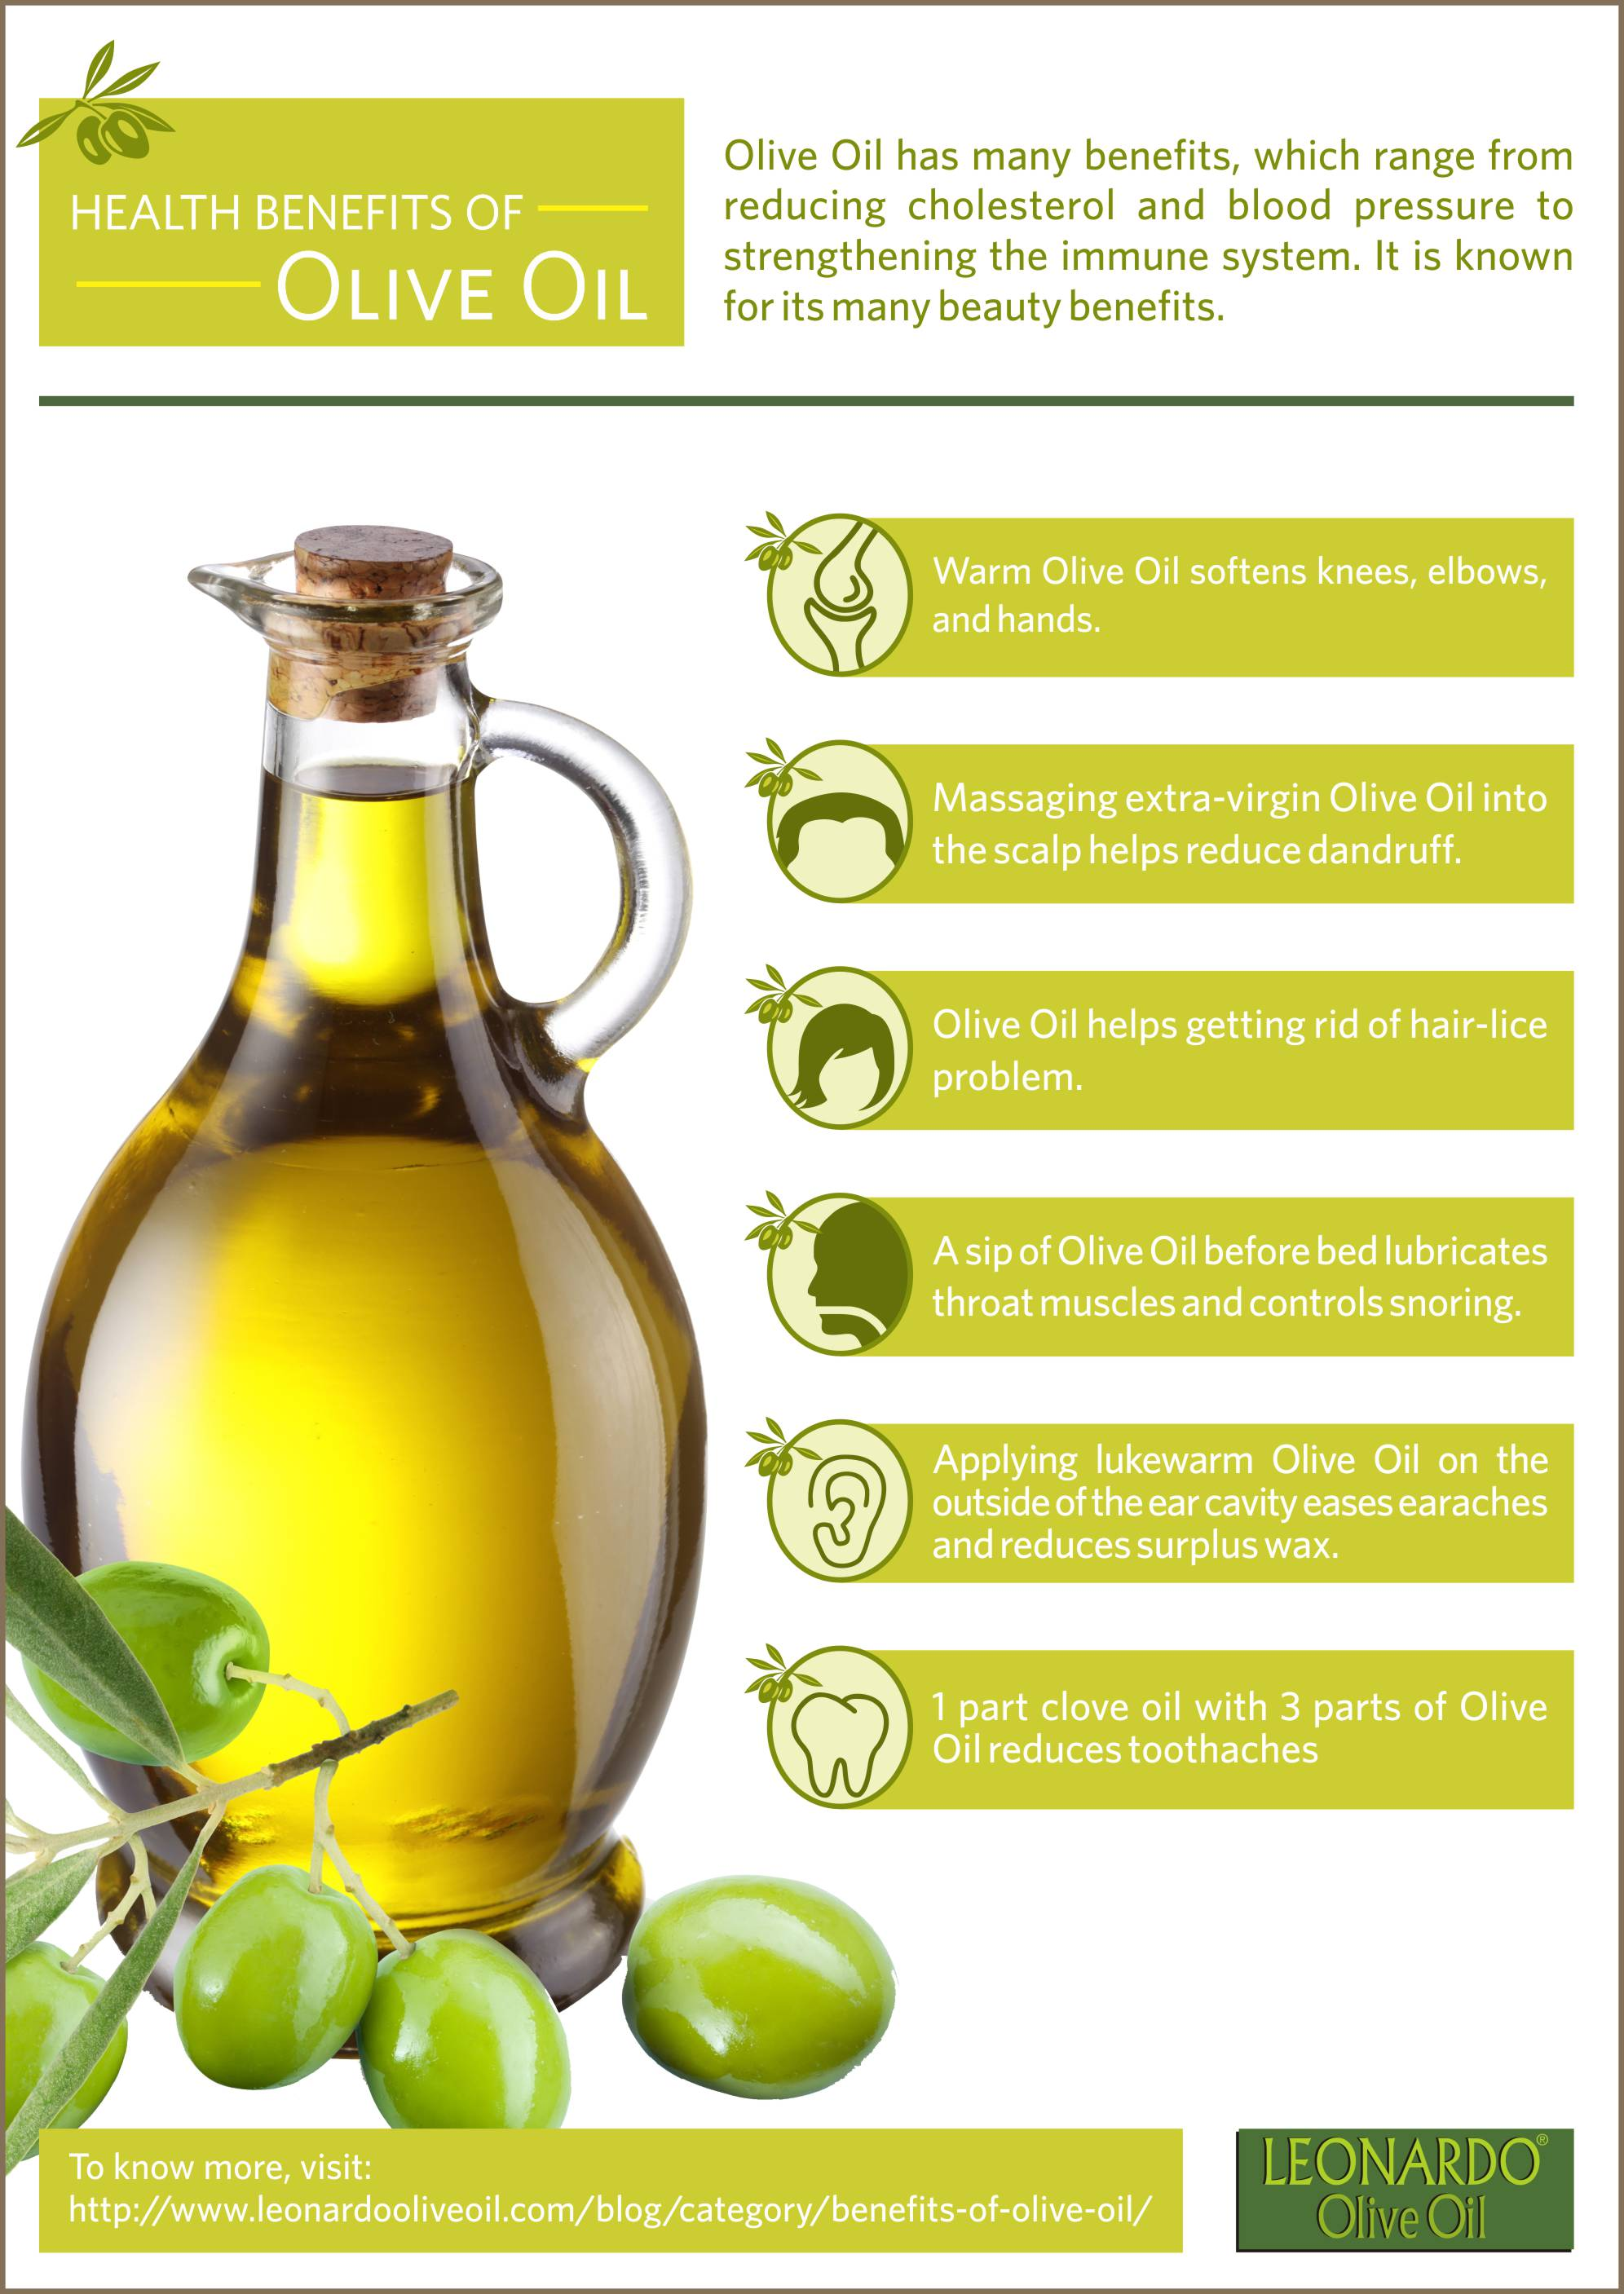 here comes olive oil to your rescue! - leonardo olive oil